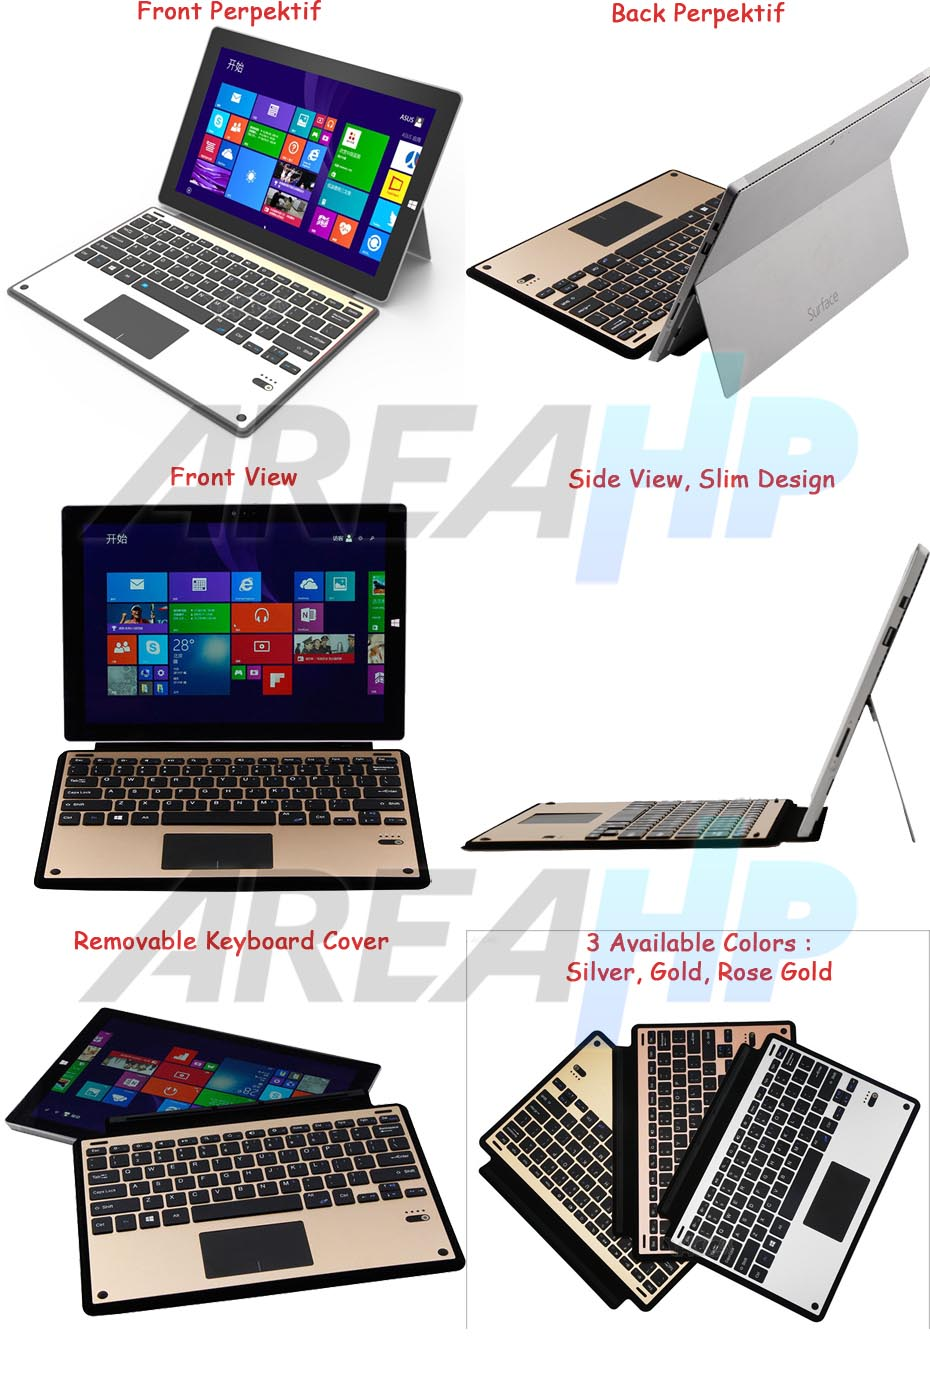 Ultra Slim Keyboard Cover for Microsoft Surface Pro 3, 4 Overview